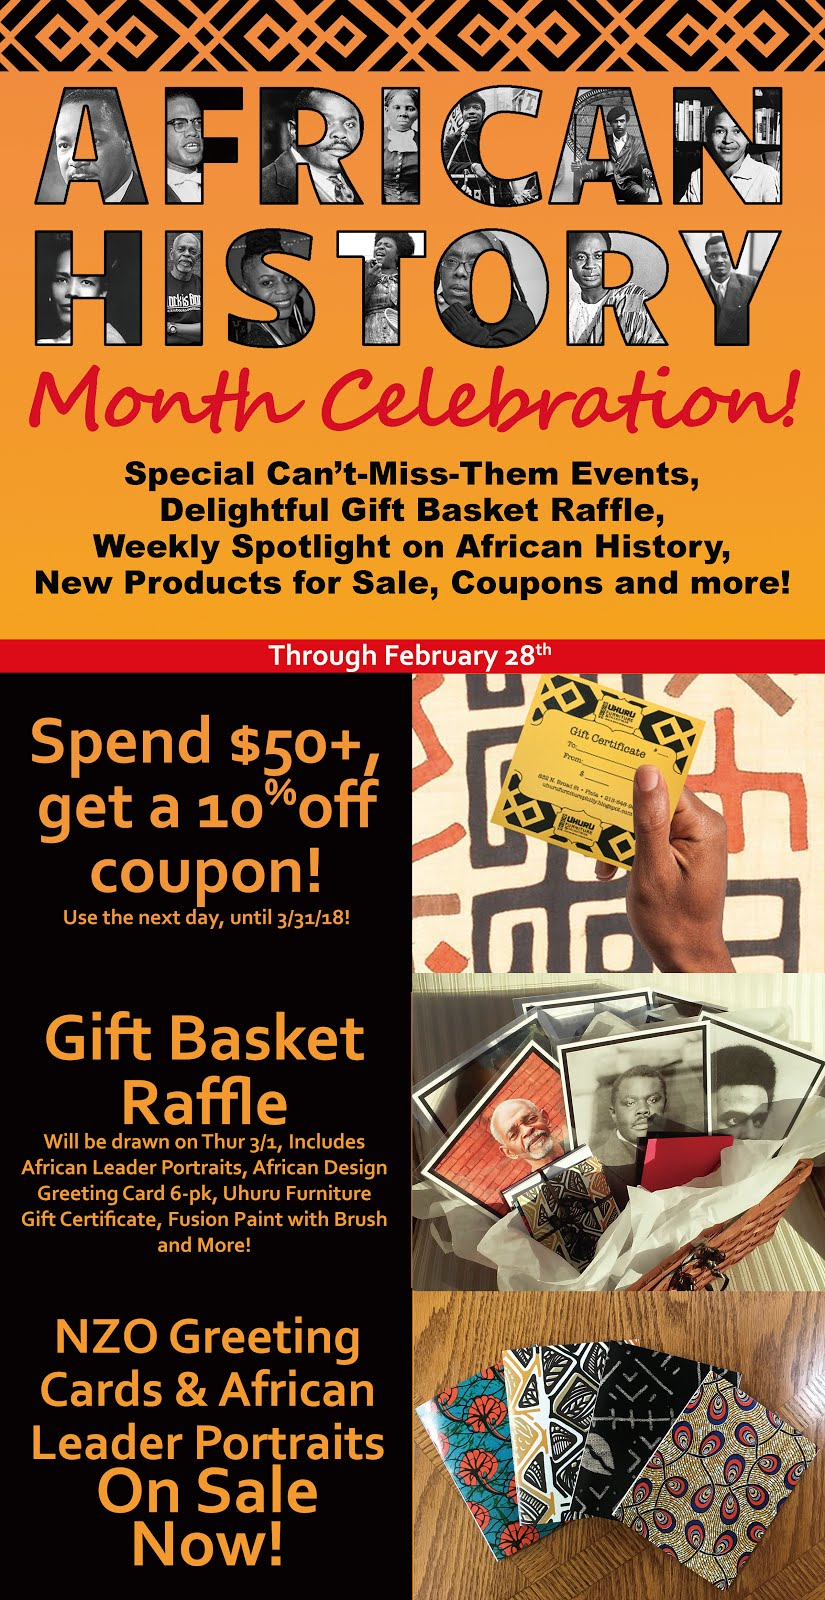 African History Month: Raffle, Coupons, New Products and More!